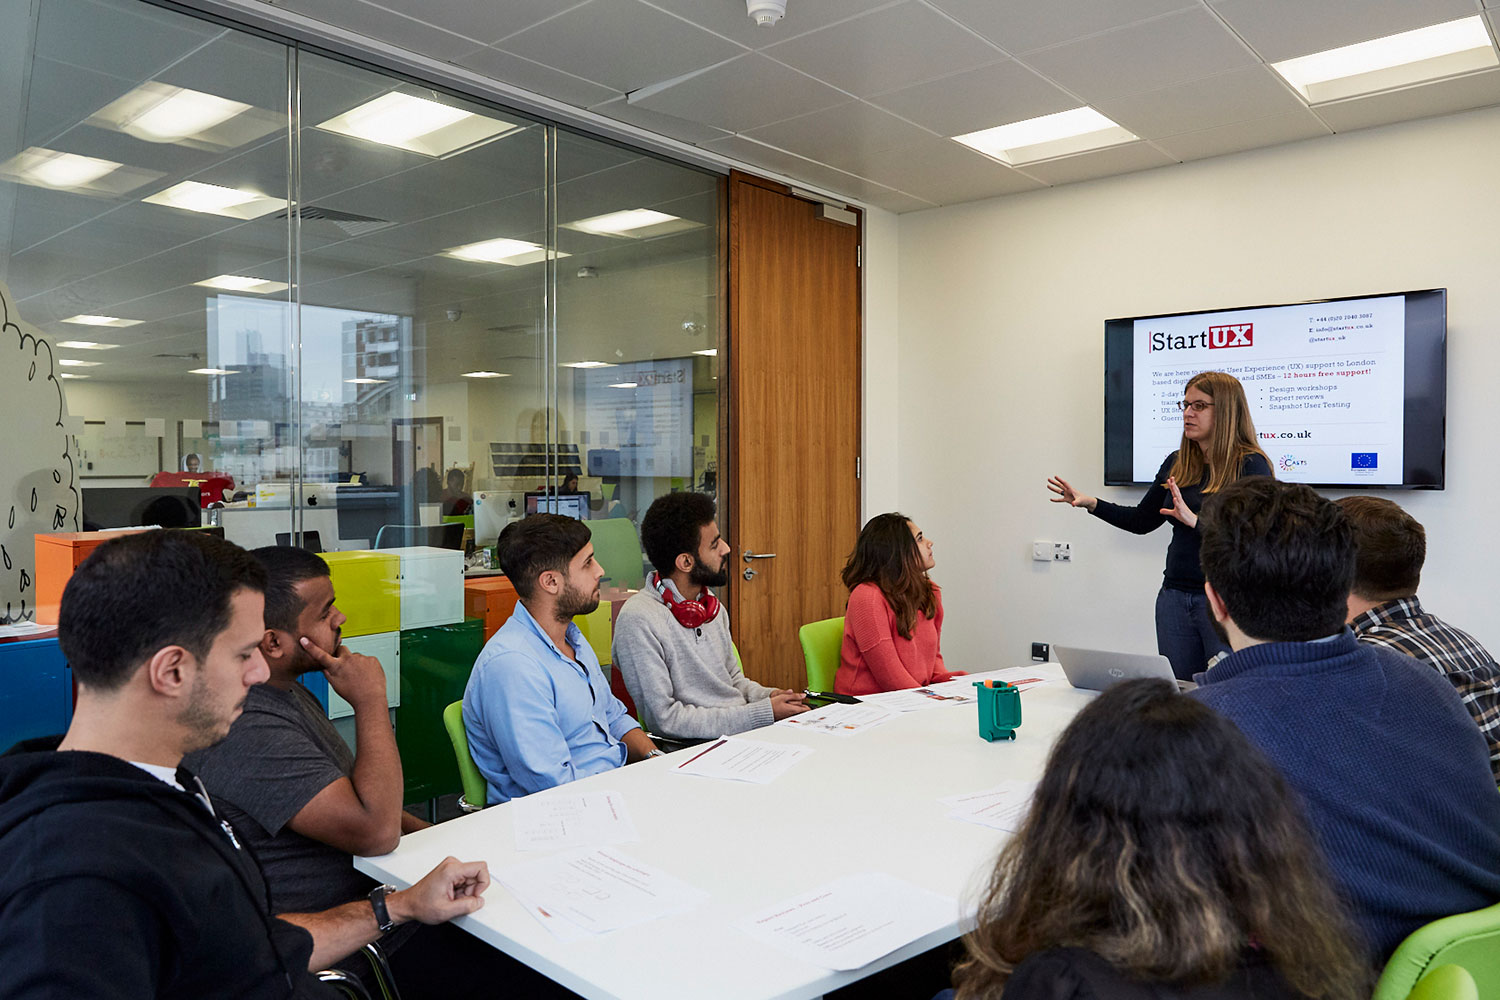 Woman addresses trainees in meeting room